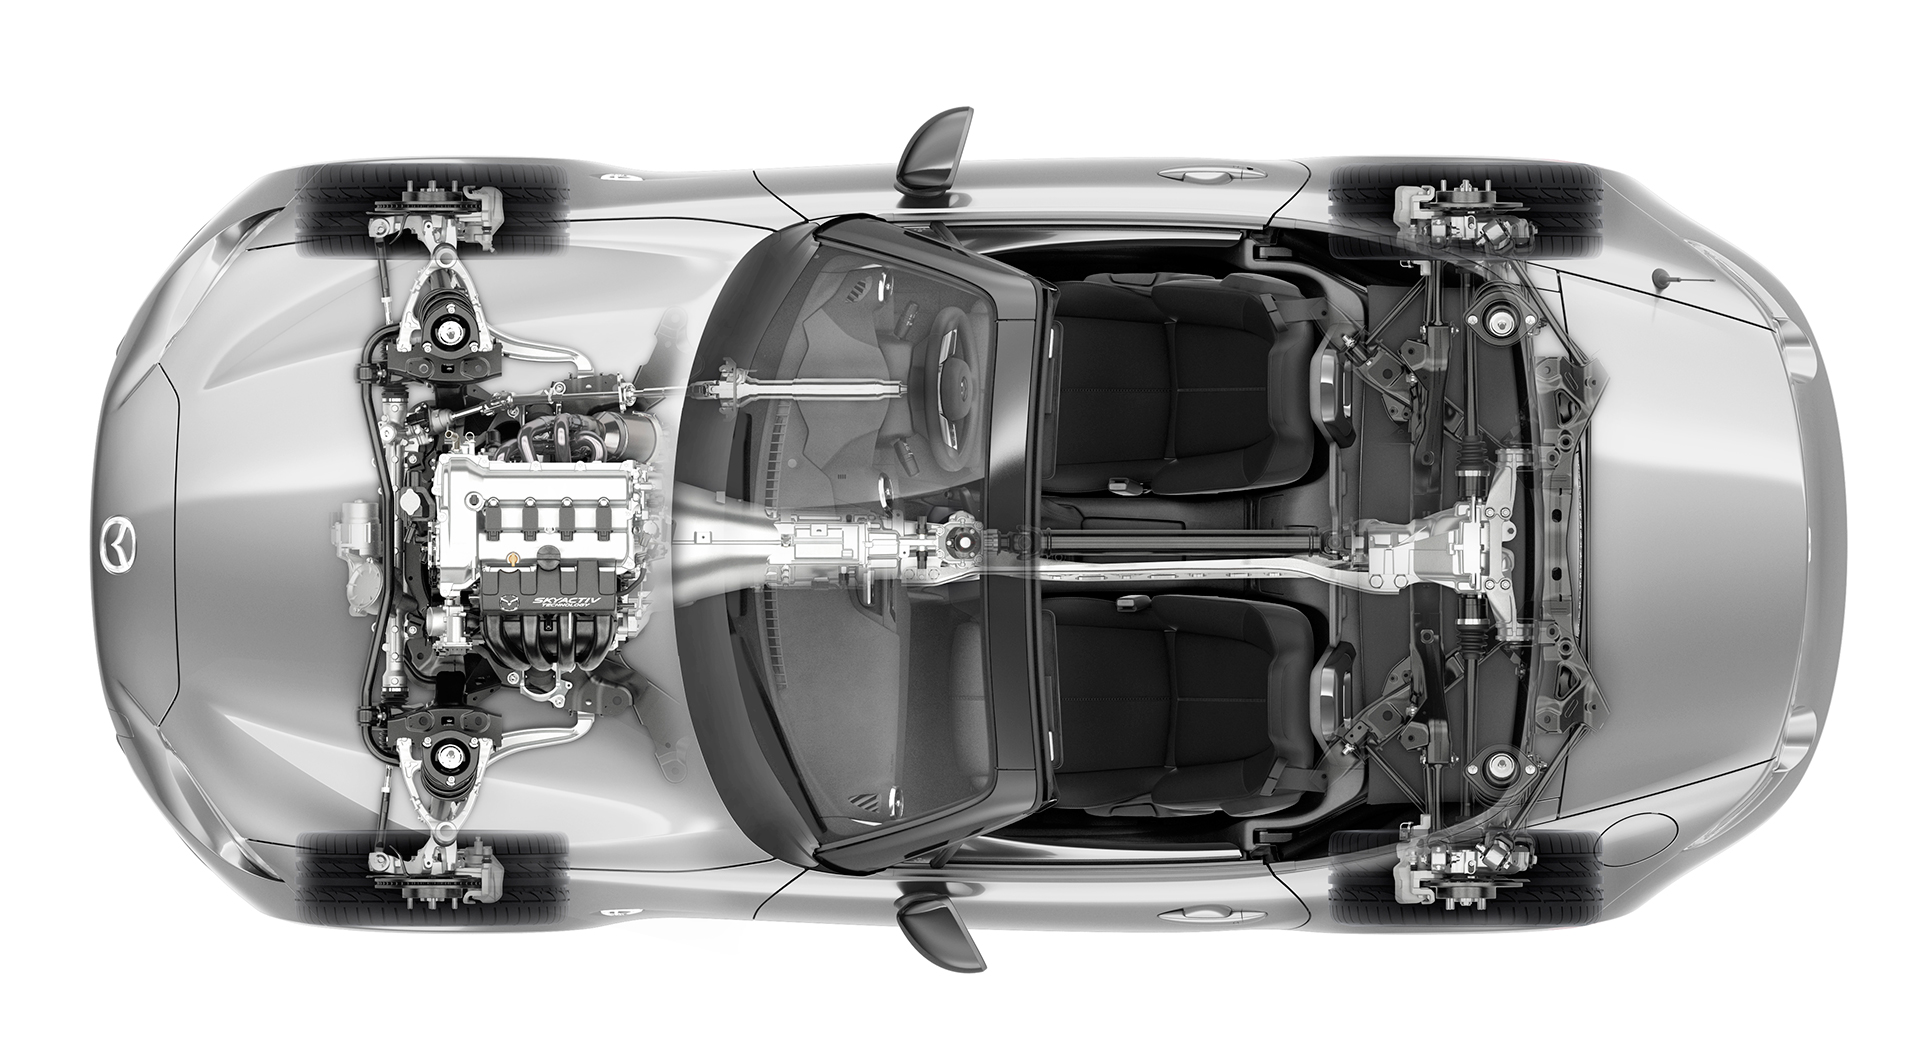 Mazda MX-5 - 2016 - top view powertrain